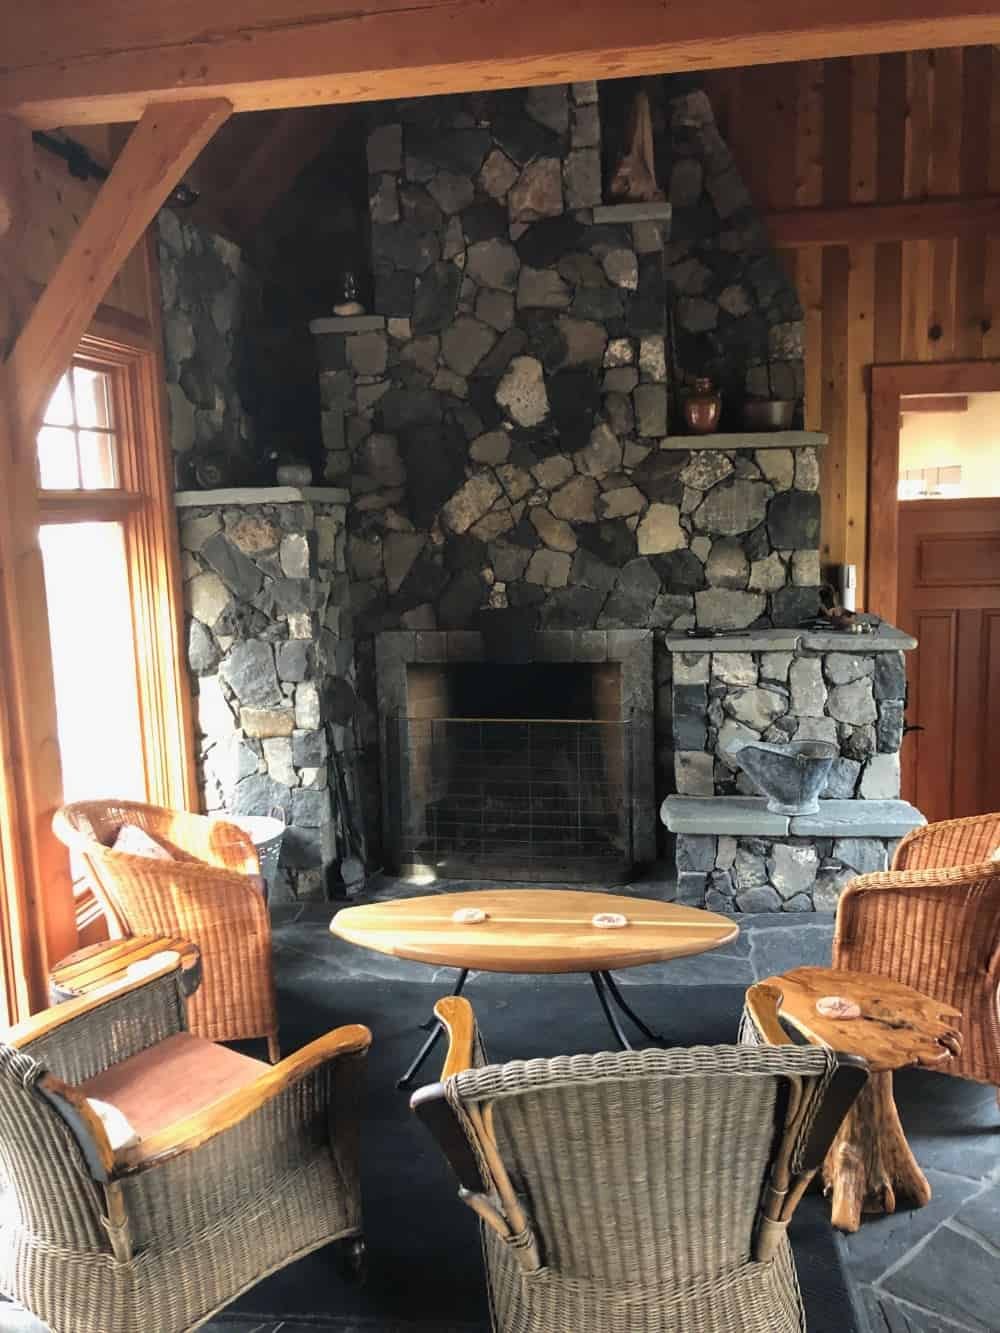 The main hall has a large wood-burning fireplace.